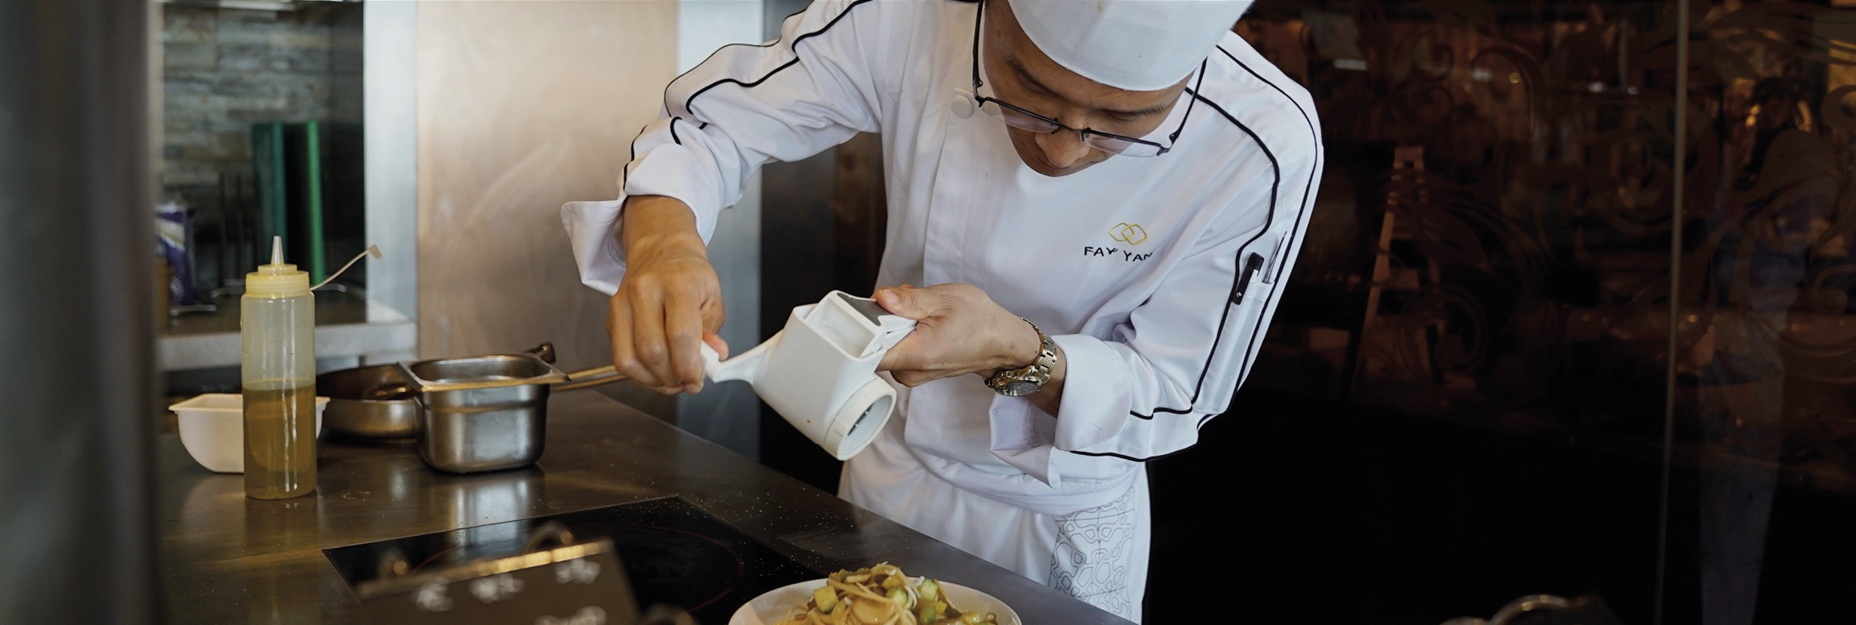 See how Sofitel Kunming cut food waste in half with simple changes